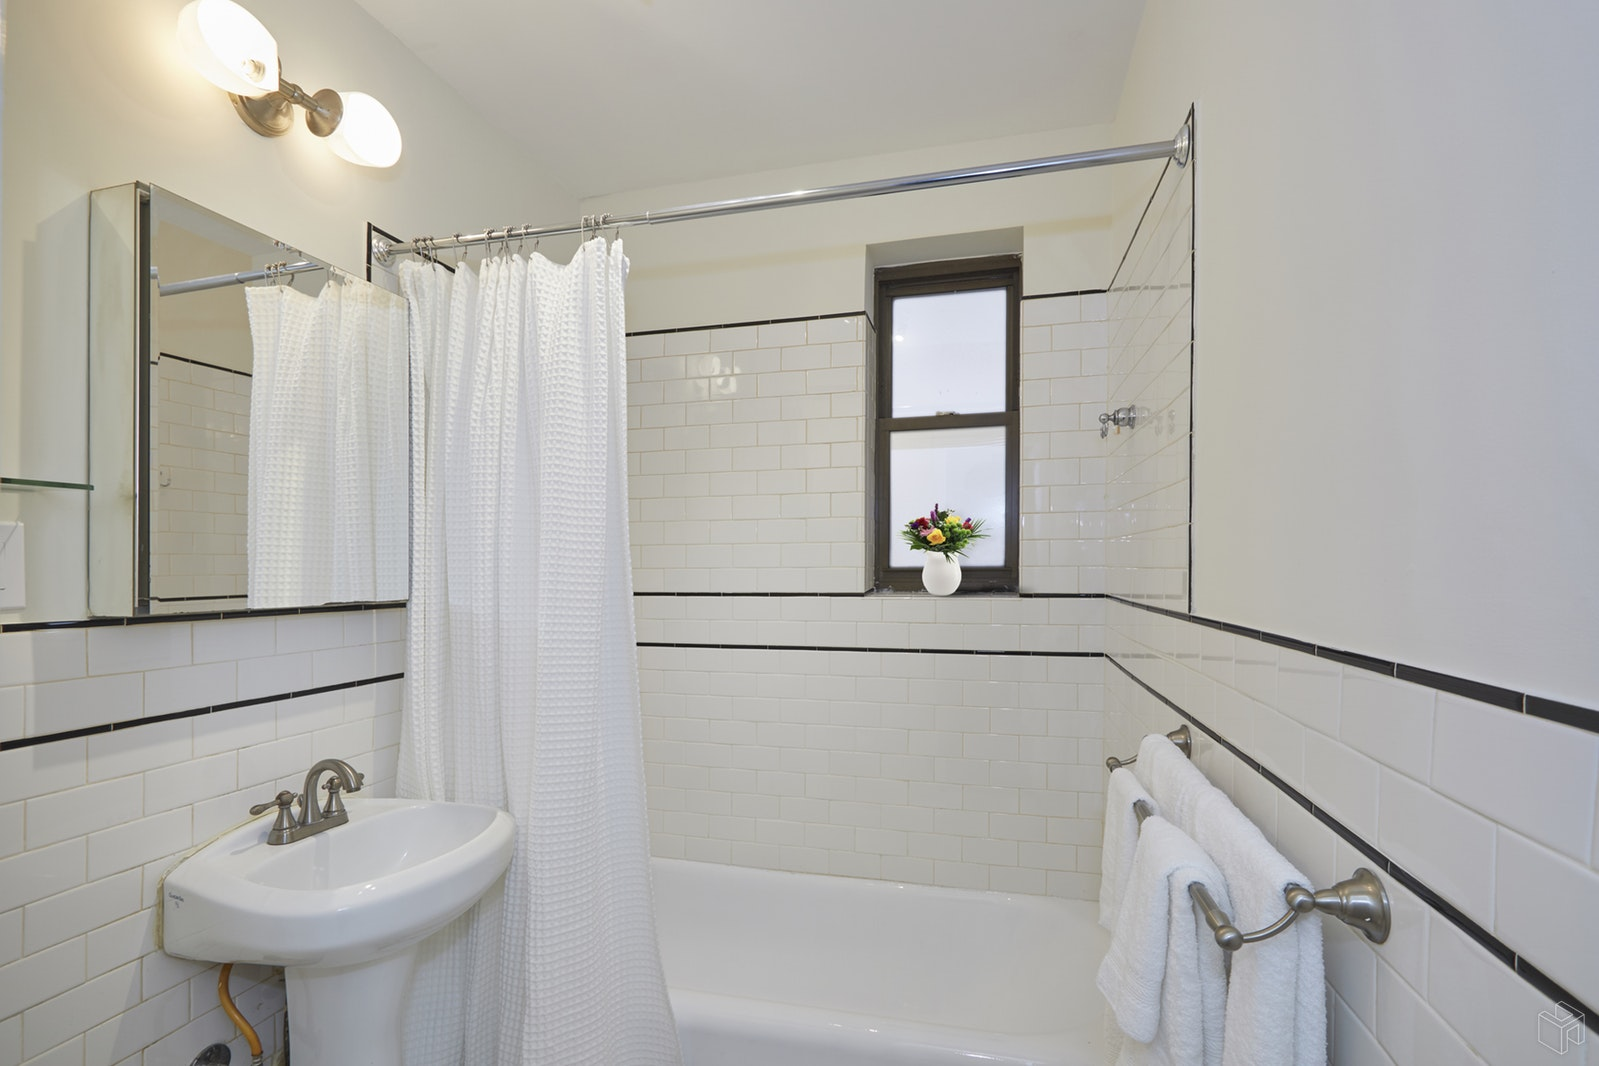 71 Ocean Parkway 2a, Prospect Park, Brooklyn, NY, 11218, $529,000, Sold Property, Halstead Real Estate, Photo 6